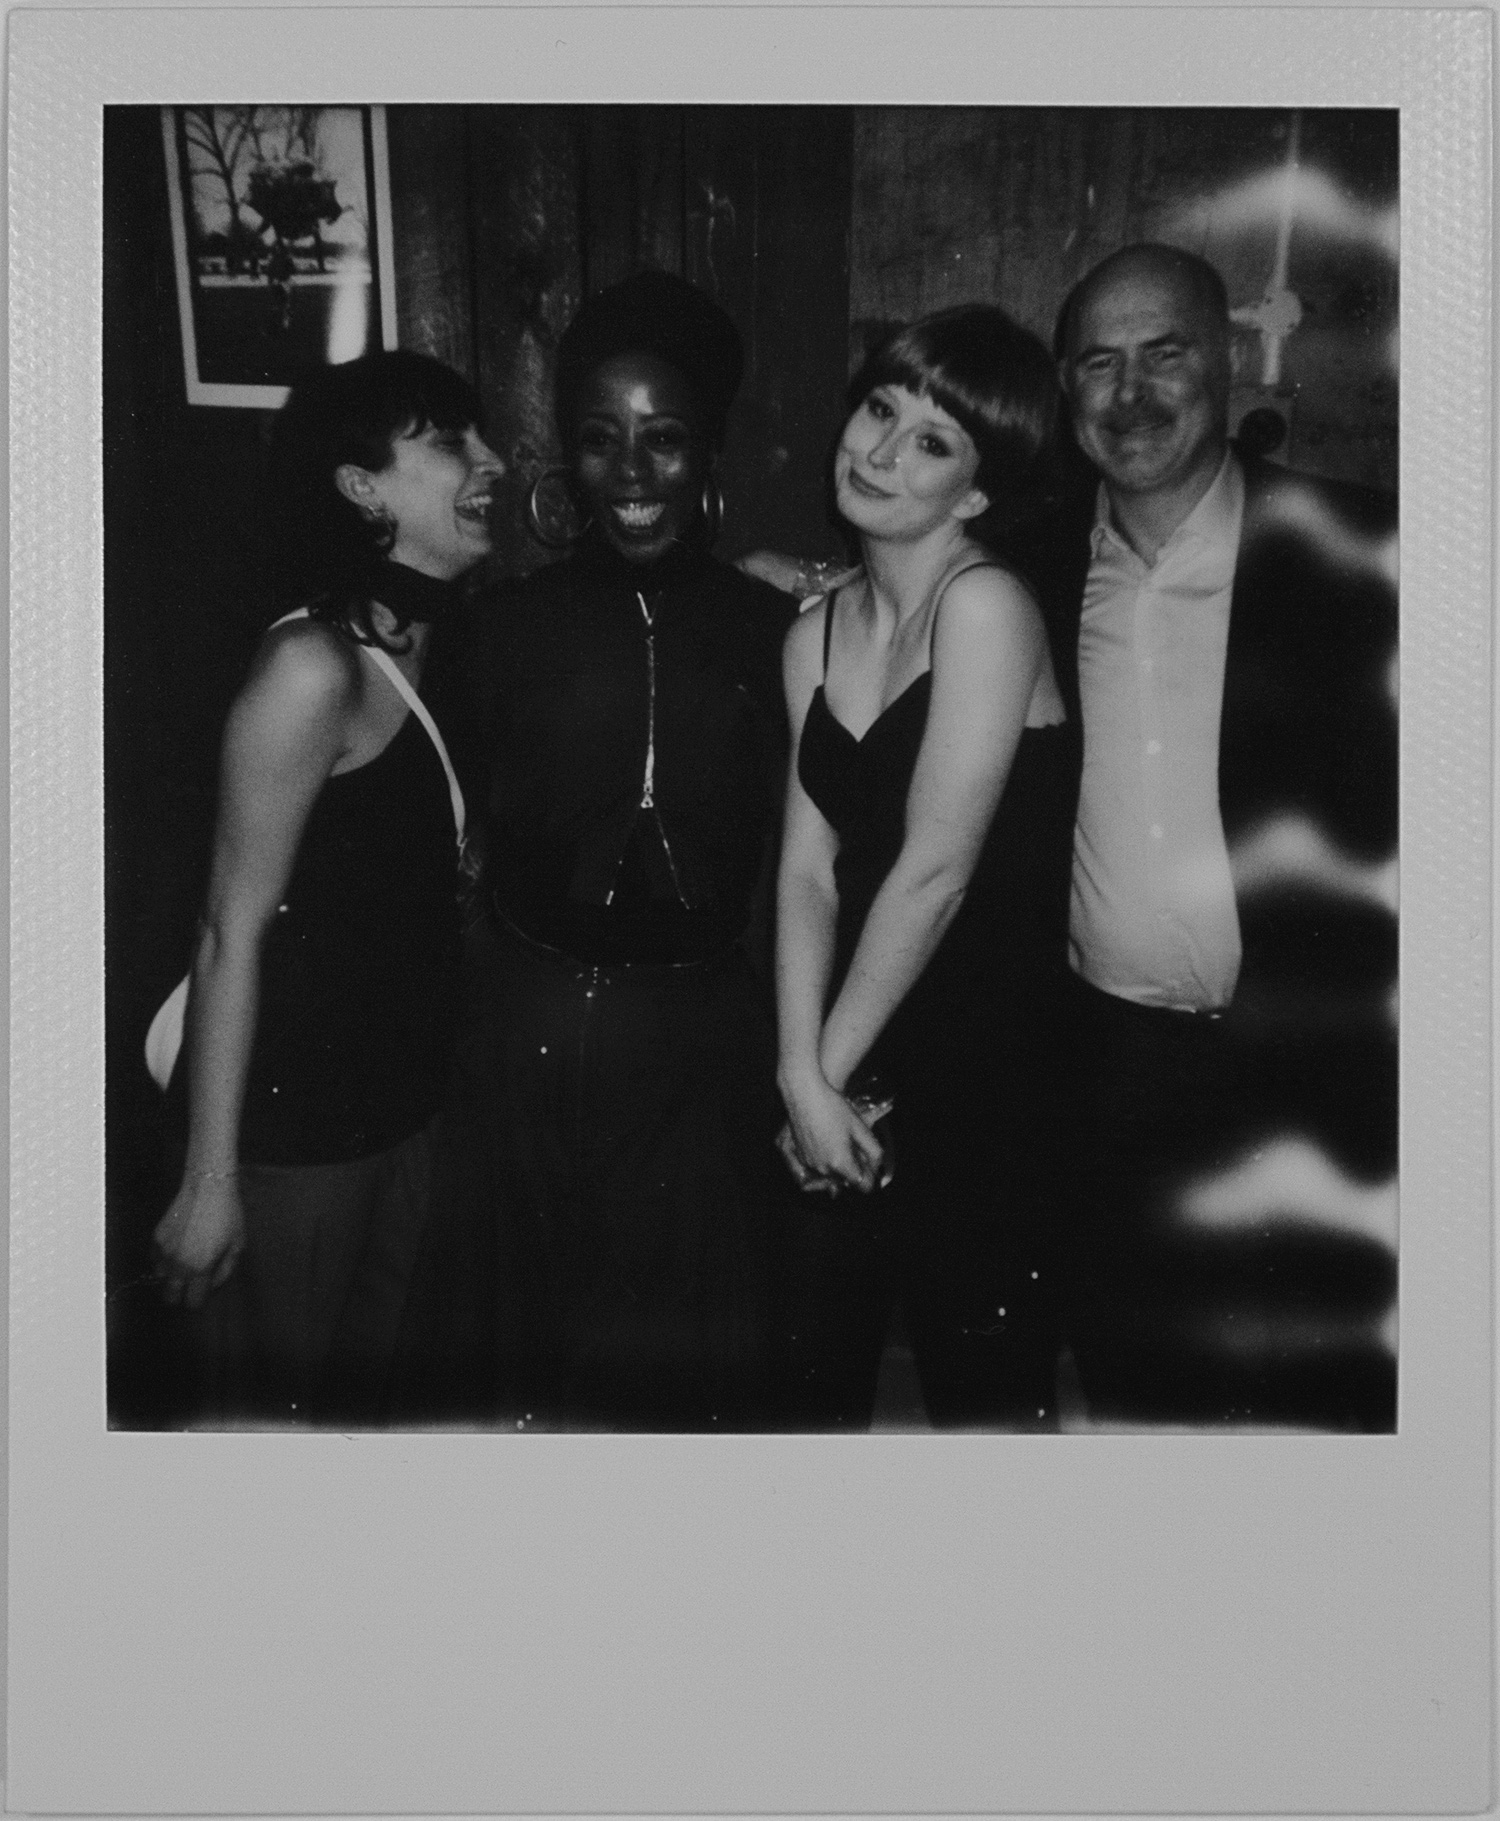 PYLOT ISSUE 04 LAUNCH PARTY IMPOSSIBLE PROJECT 06